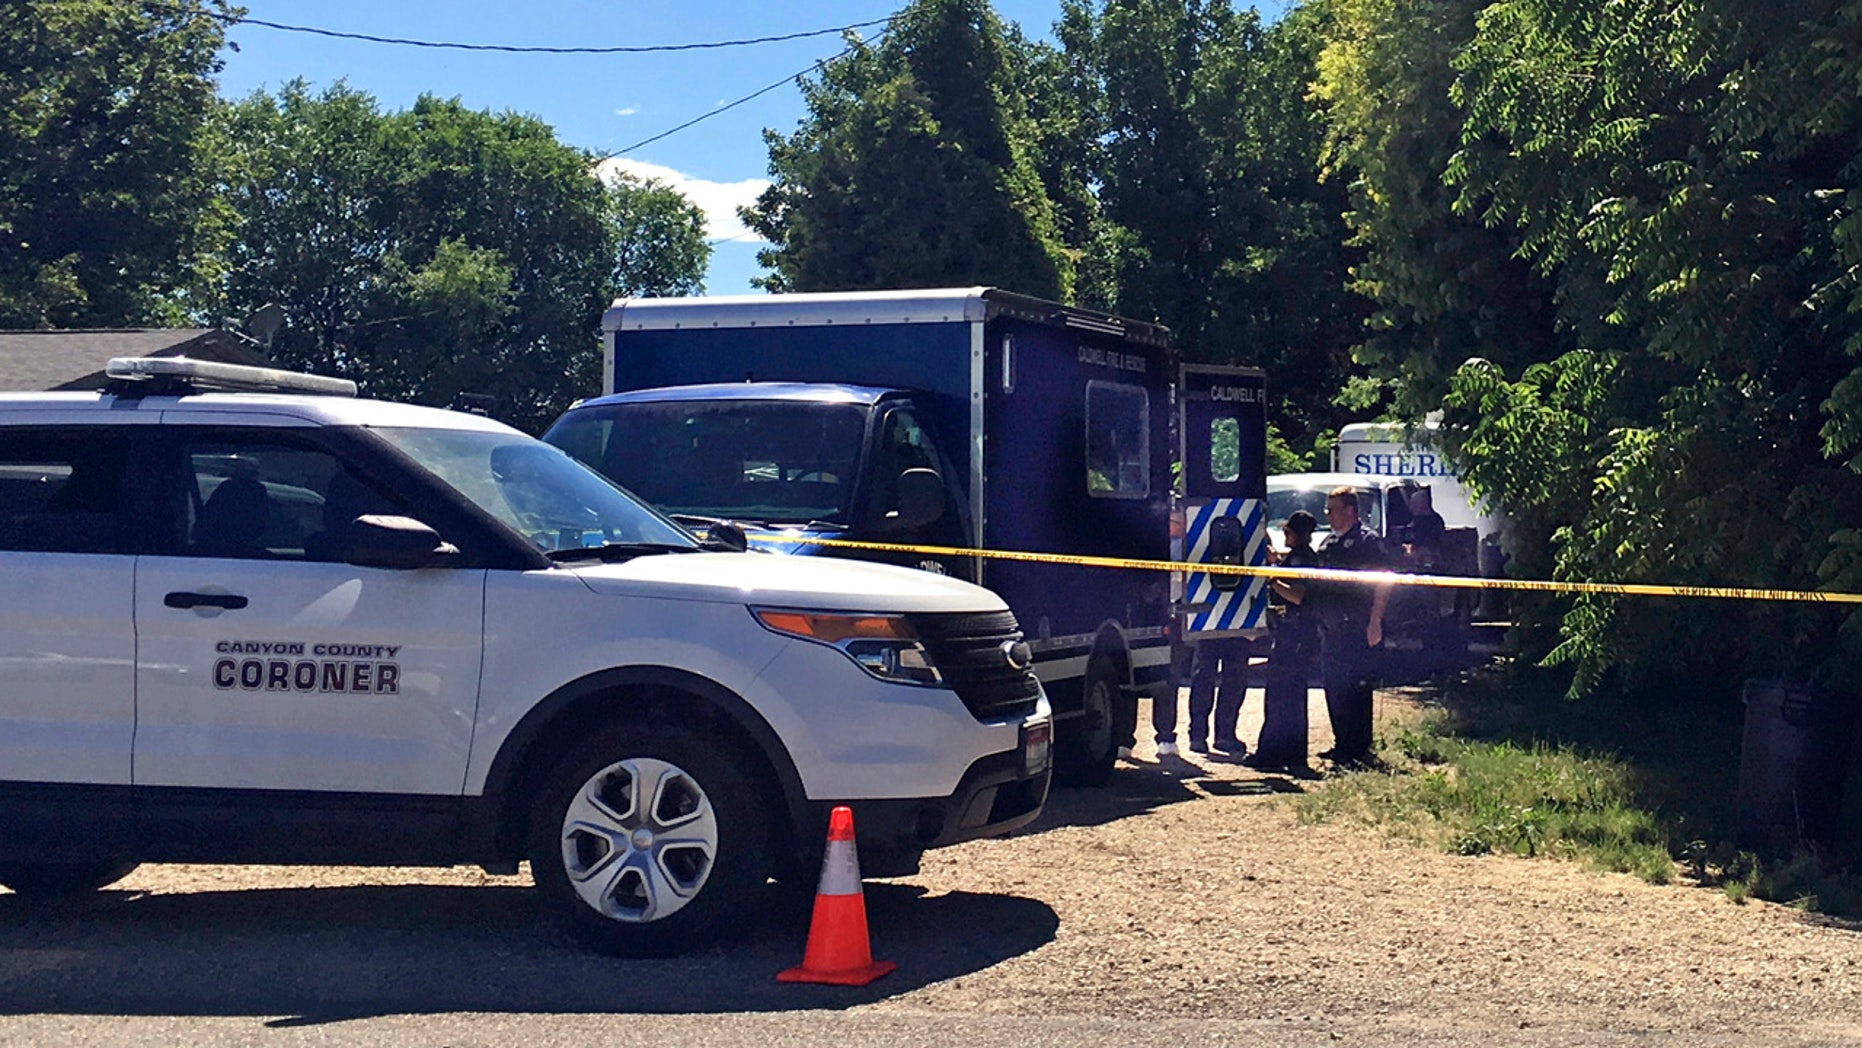 Authorities investigate a scene in Caldwell, Idaho, on Monday, June 19, 2017. Police say three people were found dead inside a home and the Canyon County Sheriff's office is investigating the deaths as possible homicides.